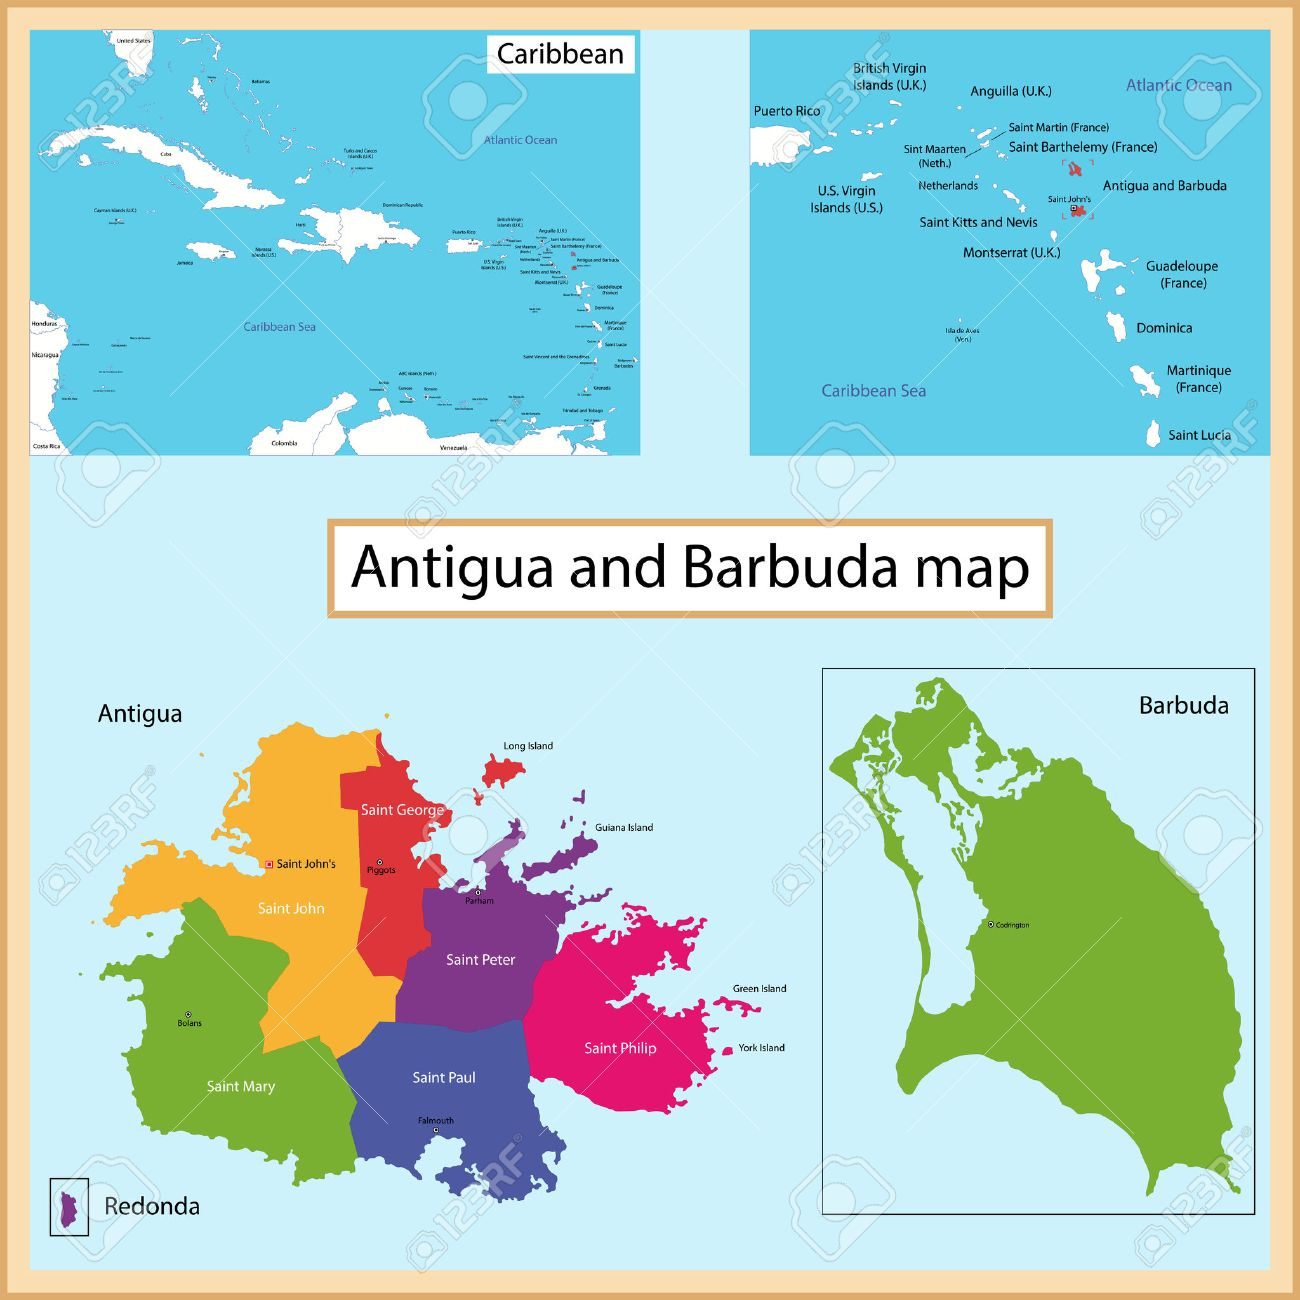 Map Of Antigua And Barbuda Drawn With High Detail And Accuracy